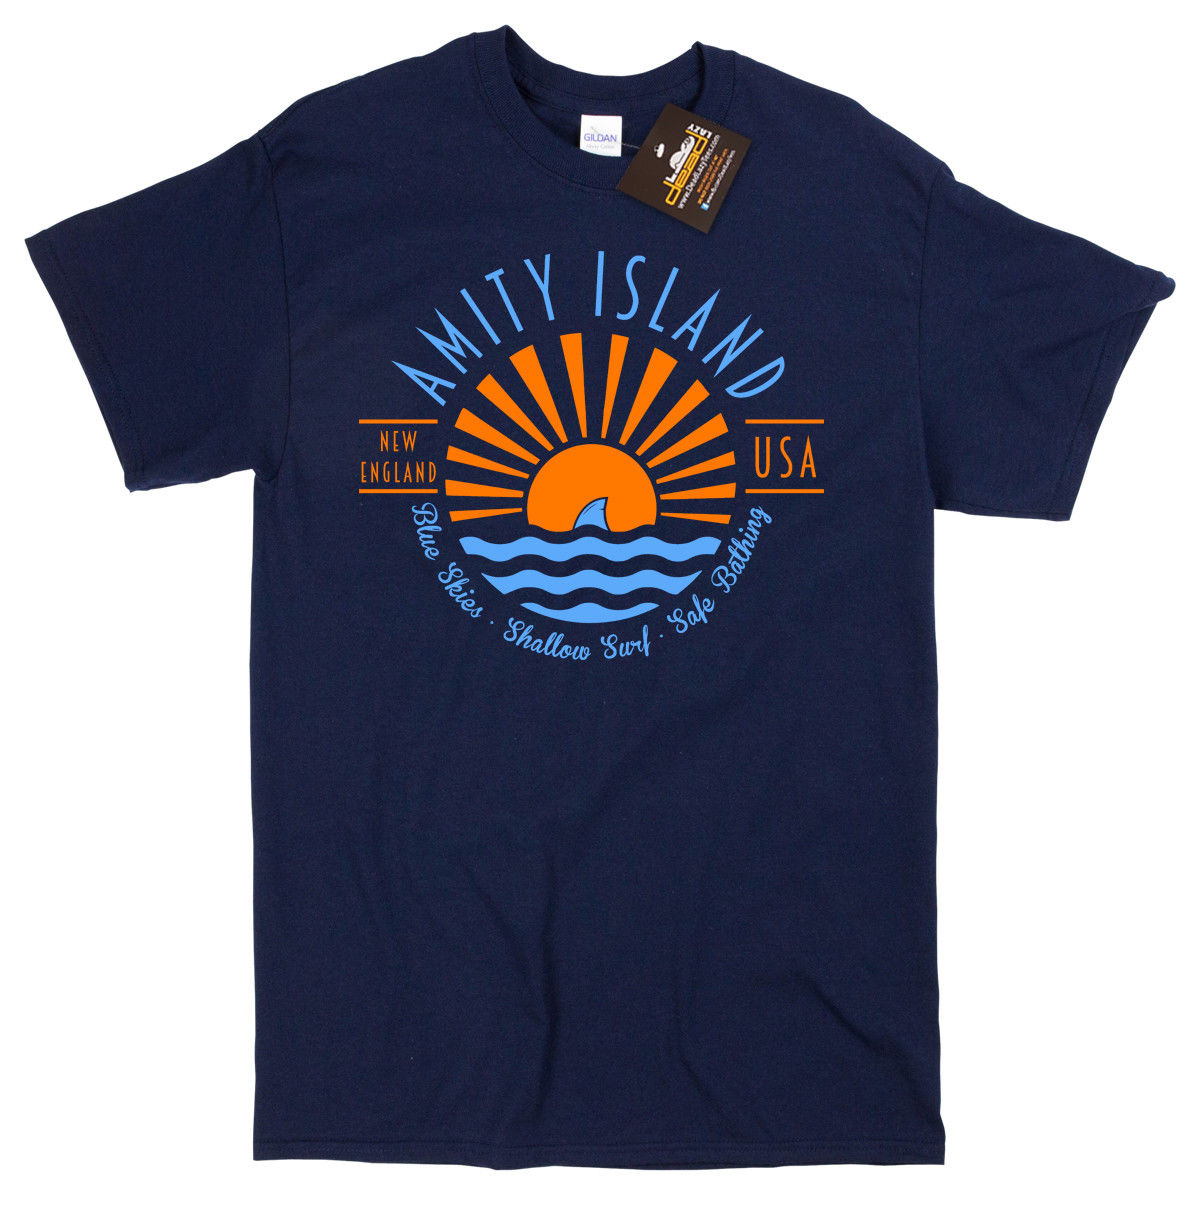 Amity Island Inspired by Jaws the movie - Retro classic film sharks movie NEW Cheap wholesale tees,100% Cotton For Man, image